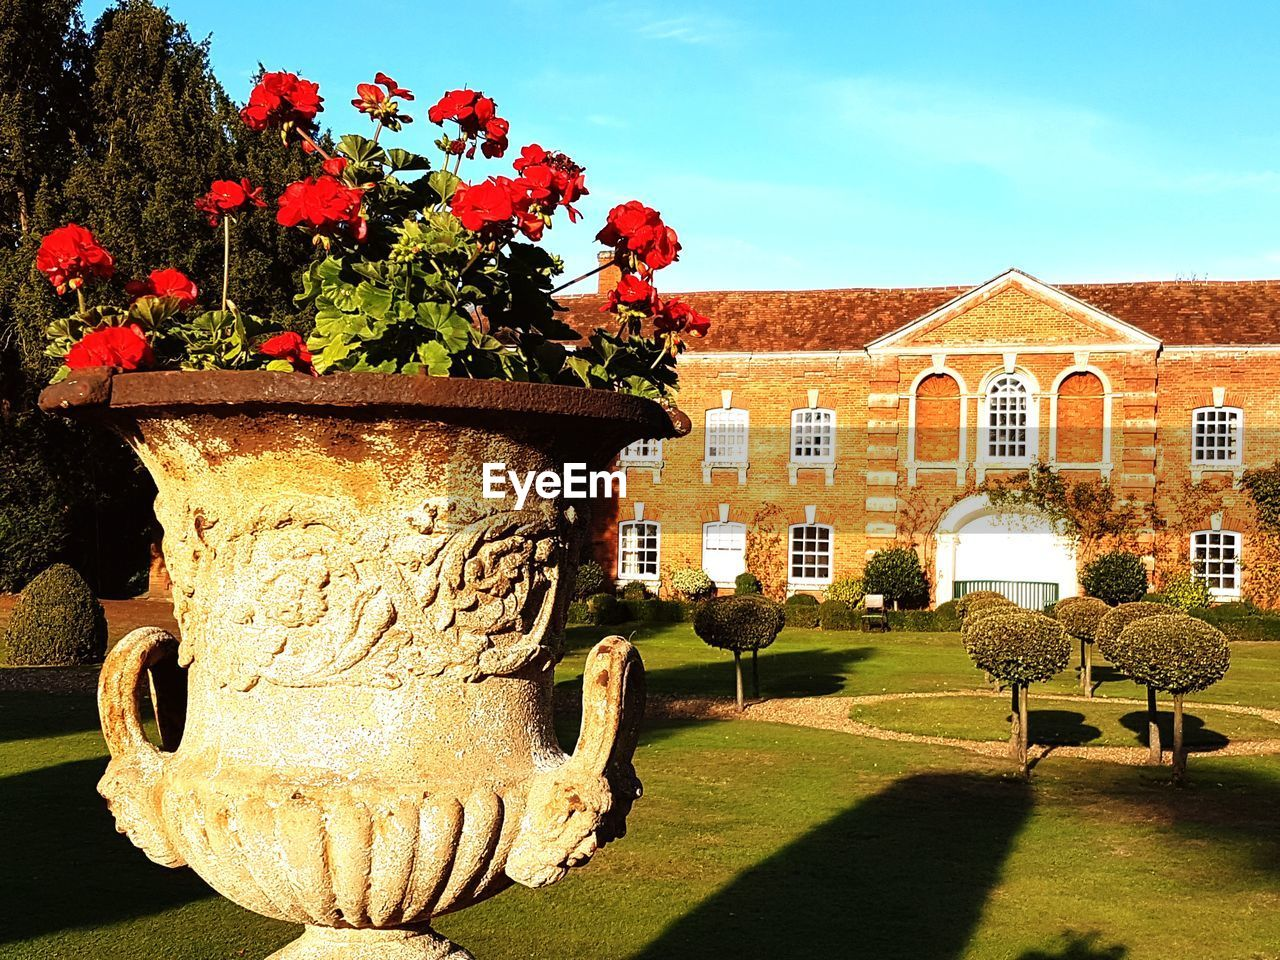 plant, nature, architecture, flowering plant, built structure, flower, building exterior, sunlight, sky, day, tree, growth, building, no people, garden, outdoors, shadow, formal garden, front or back yard, freshness